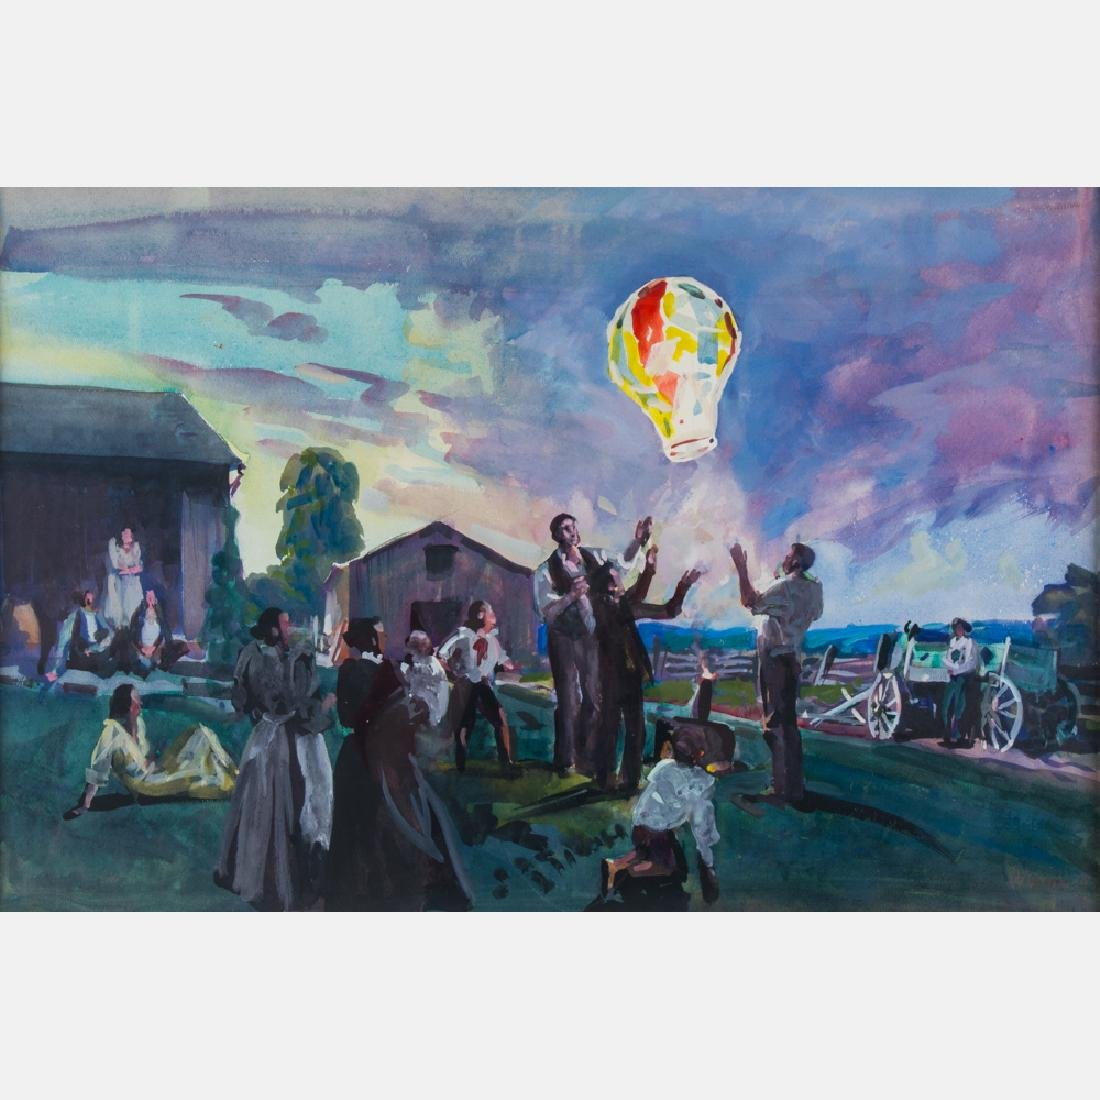 Frank Wilcox (1887-1964) Fire Balloon, Watercolor on